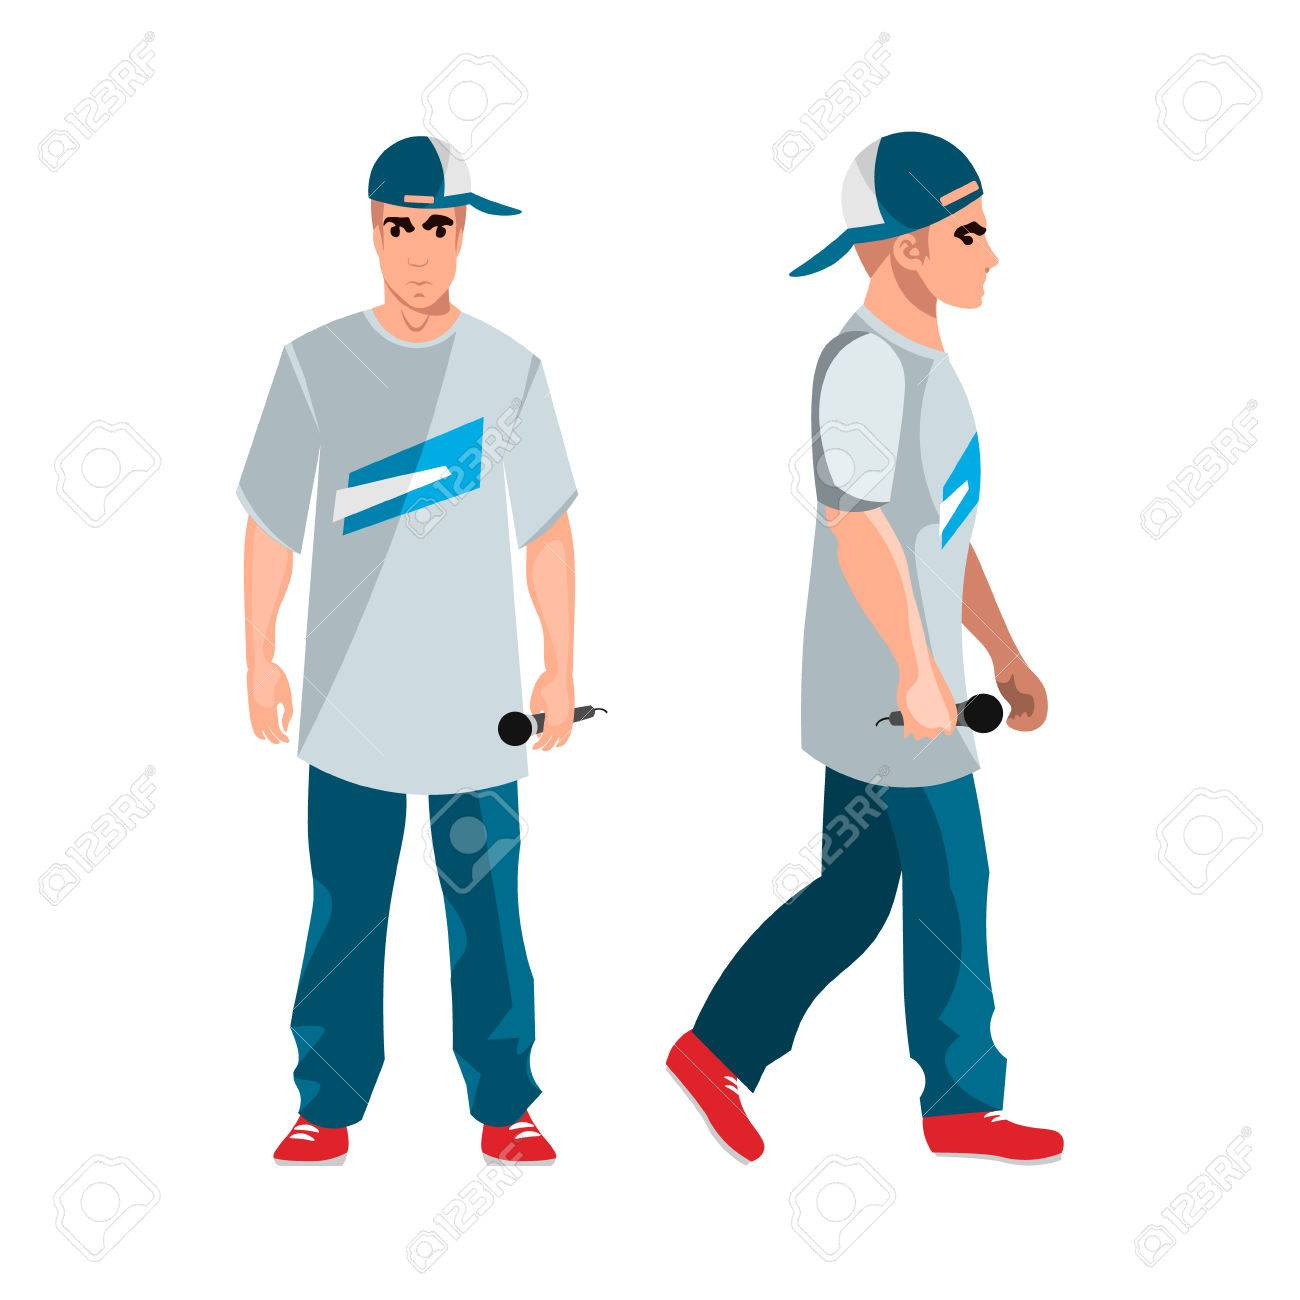 f406db61ff7 Rapper Man Dressed In Rappers Style Clothing Royalty Free Cliparts ...